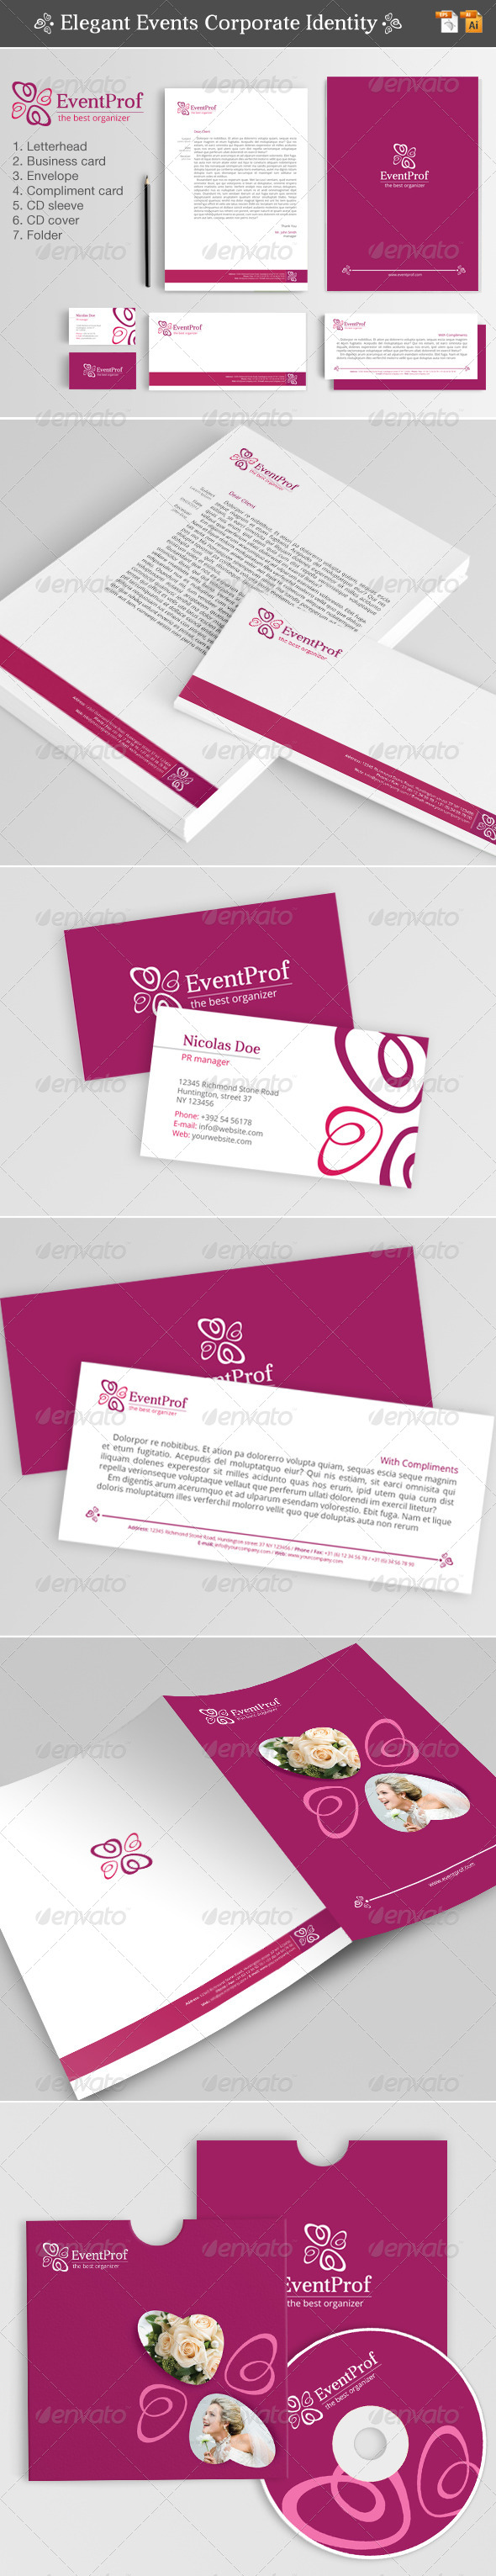 Elegant Events Corporate Identity - Stationery Print Templates